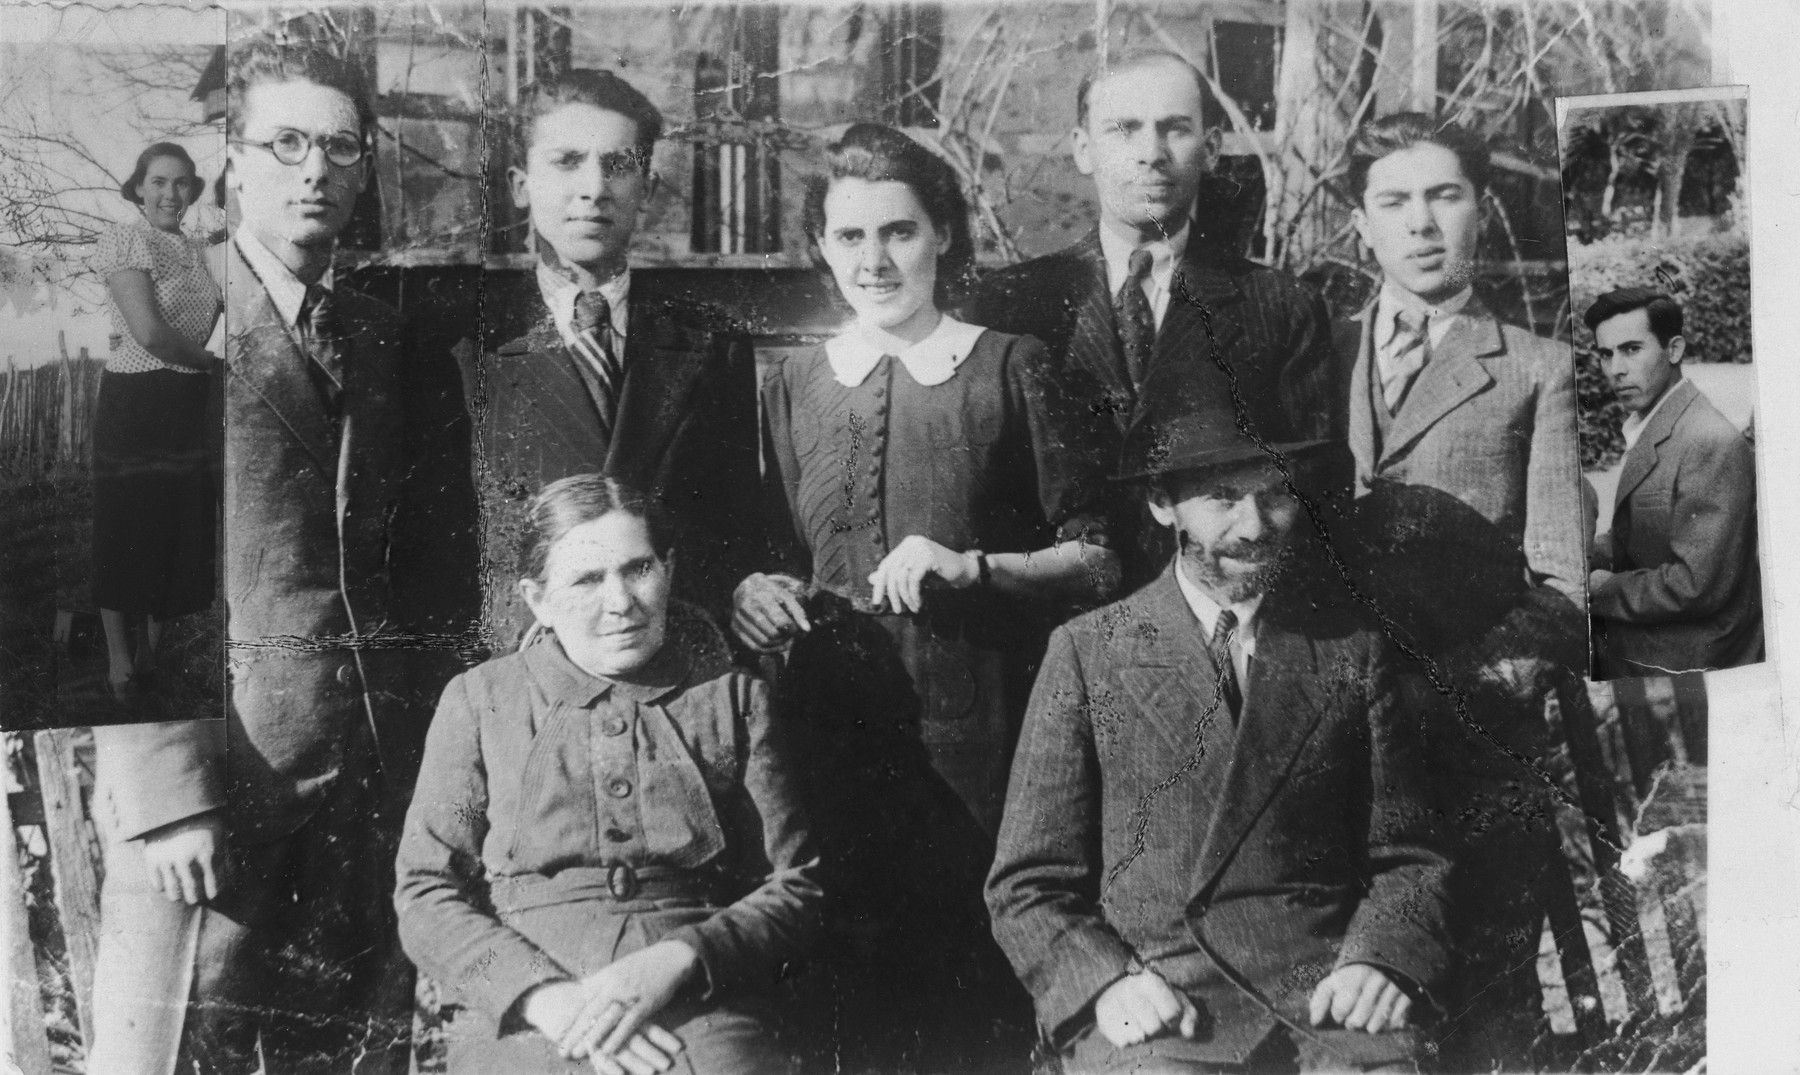 Portrait of the Berkovitz family in Berehovo, Transcarpathia, to which photos of an absent brother and sister have been added as an overlay.   Pictured in the front row are Wilhelm and Rose (Steiner) Berkovitz.  Behind them are their seven children (from left to right): Margit, Miklos, Laszlo, Olga, Erno, Ferenc, and Imre.